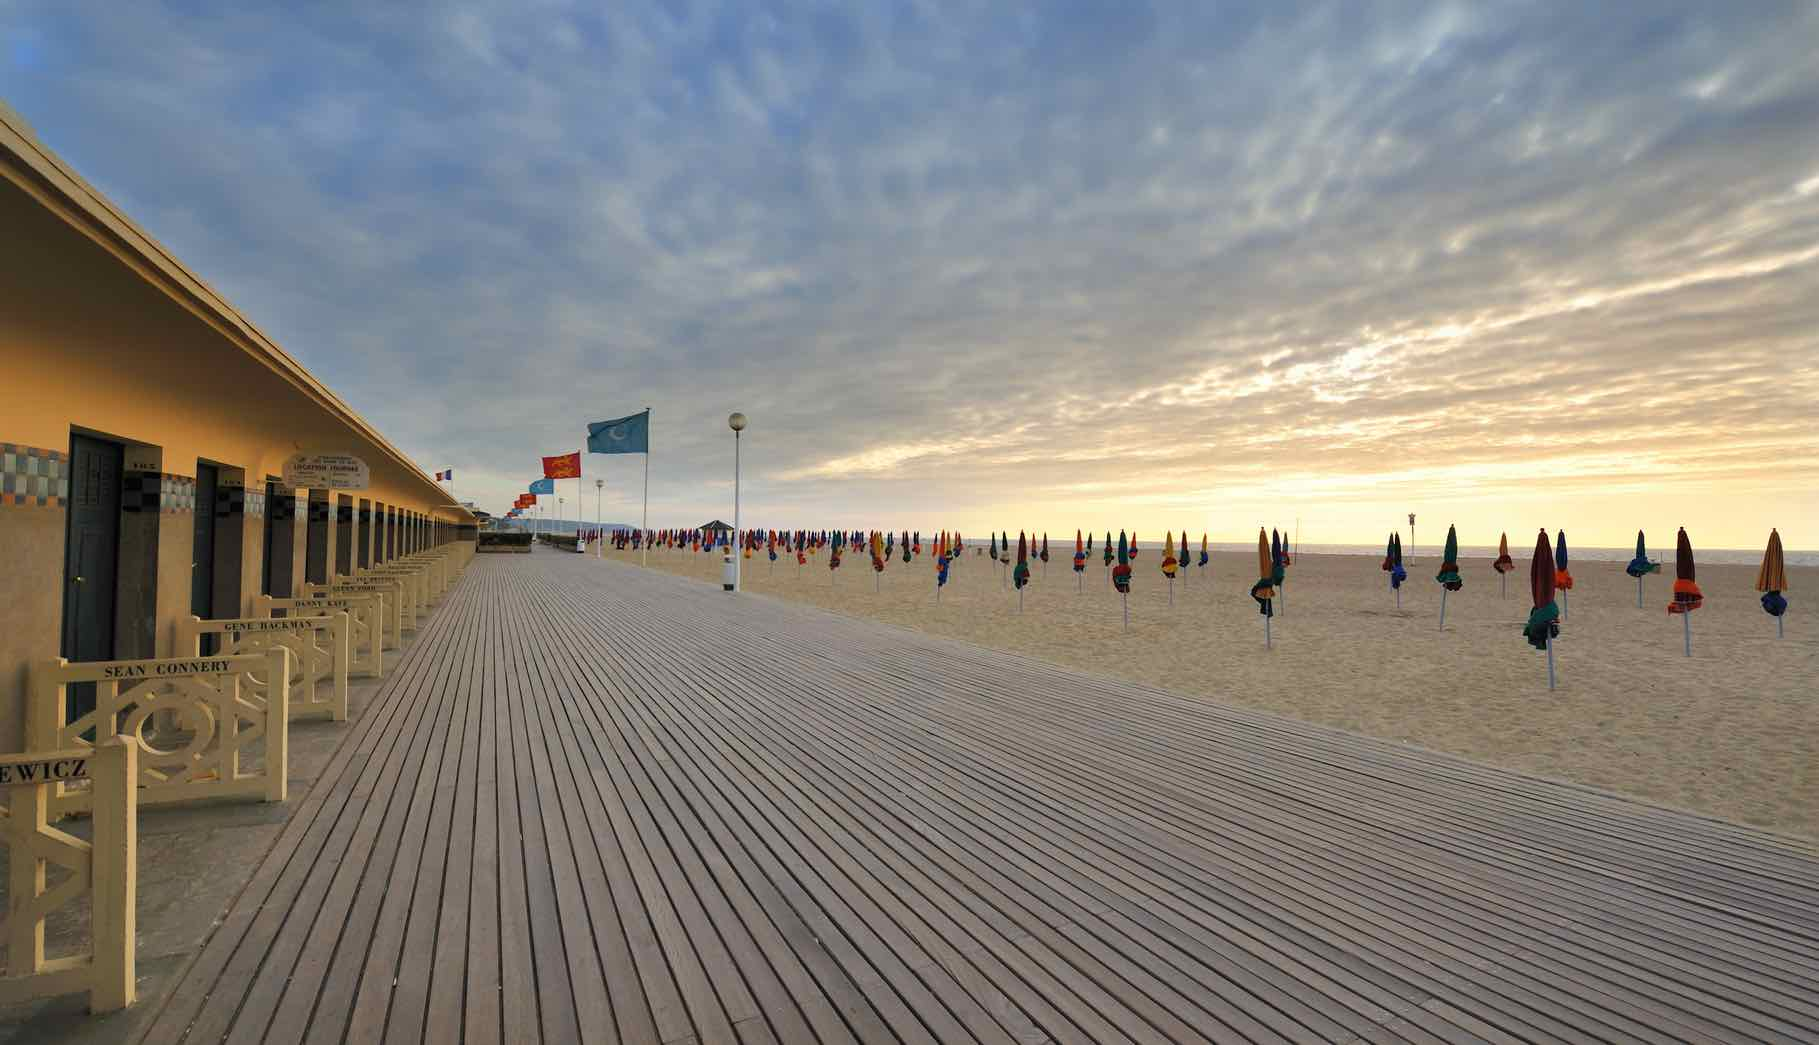 Introducing Our Vacation Rentals in Normandy France by Paris Perfect Deauville boardwalk